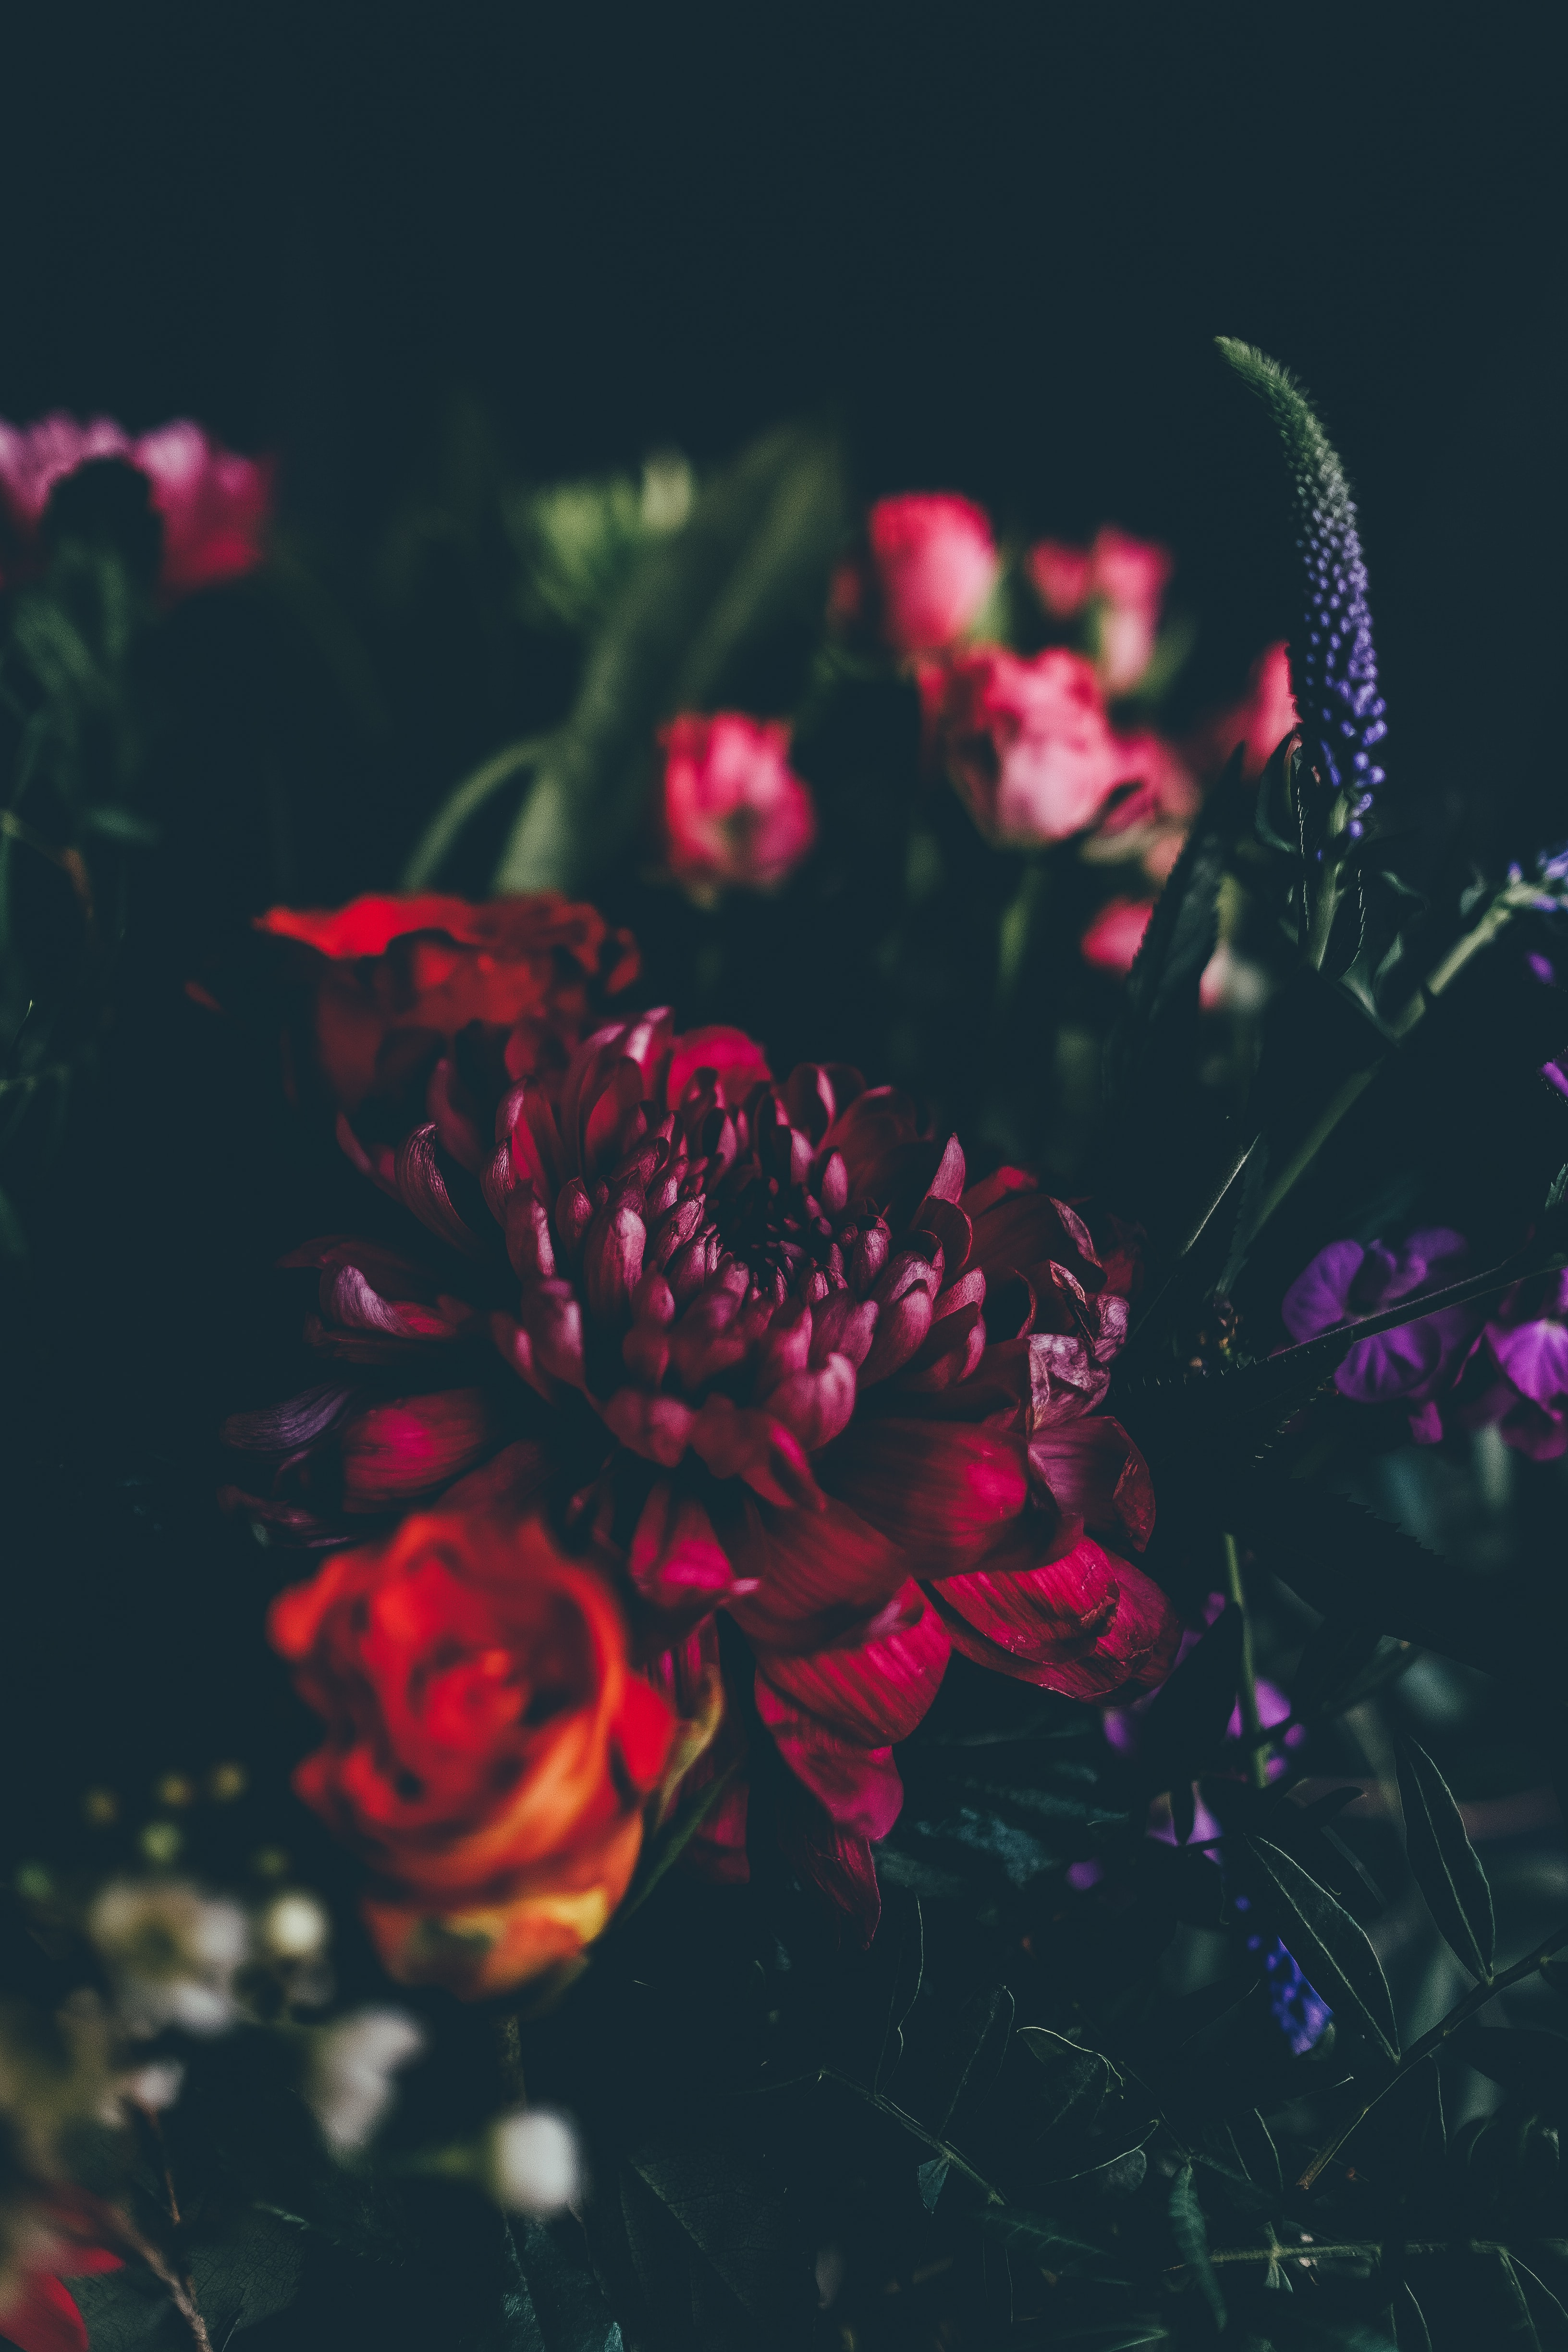 A dim shot of dahlias, roses and other flowers